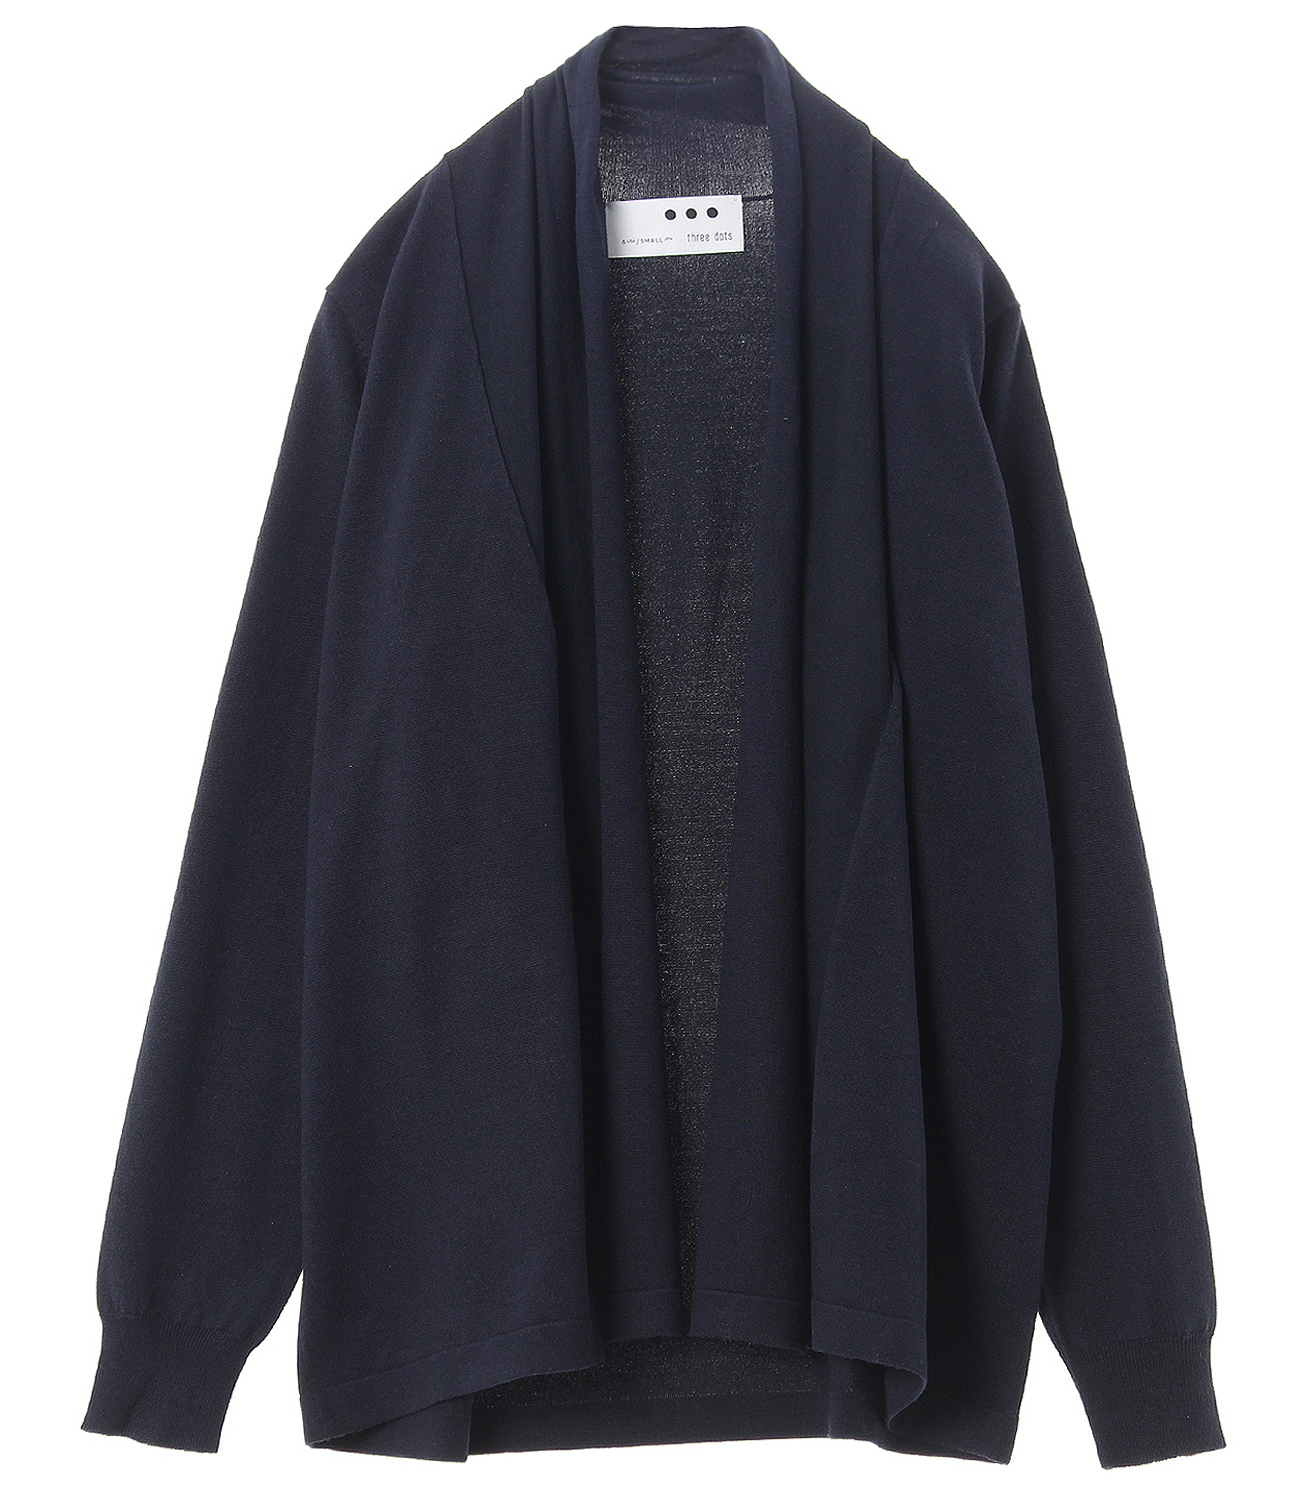 Washable silk l/s cardigan 詳細画像 navy 1